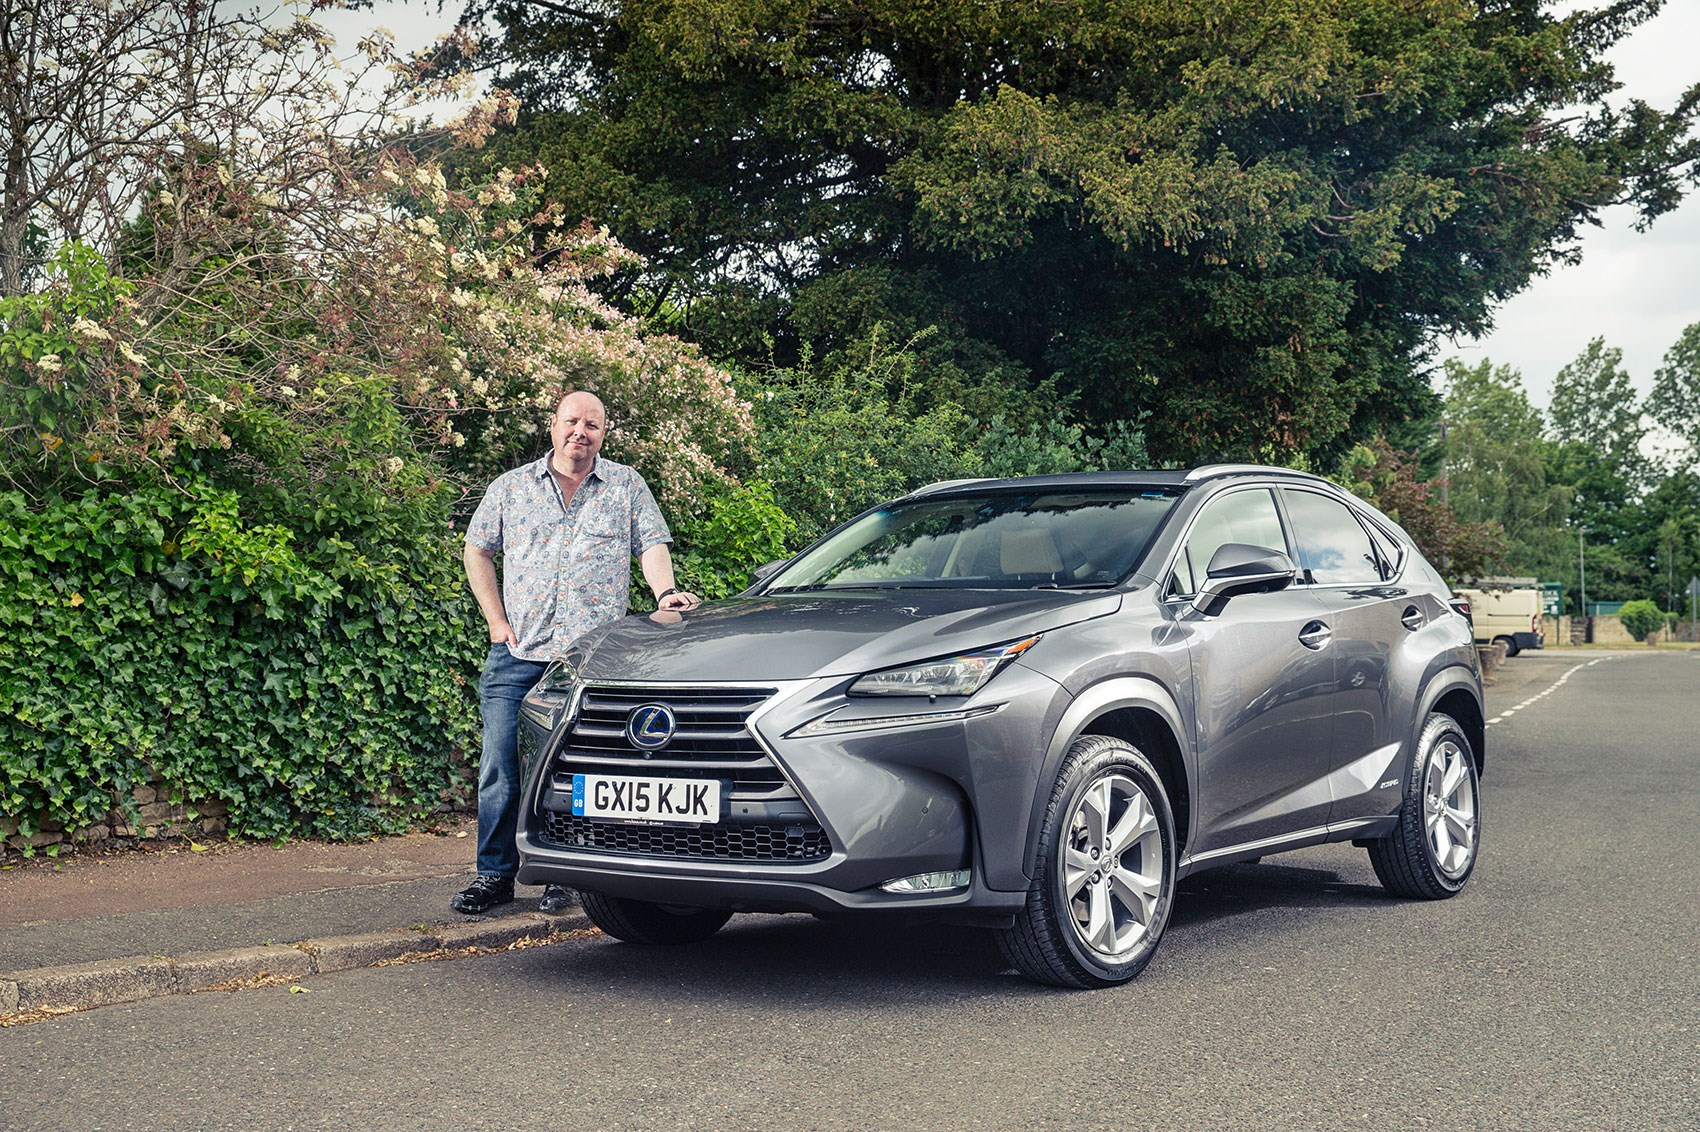 Car S Greg Fountain Tries To Avoid Losing An Eye On The Pointy Lexus Nx300h